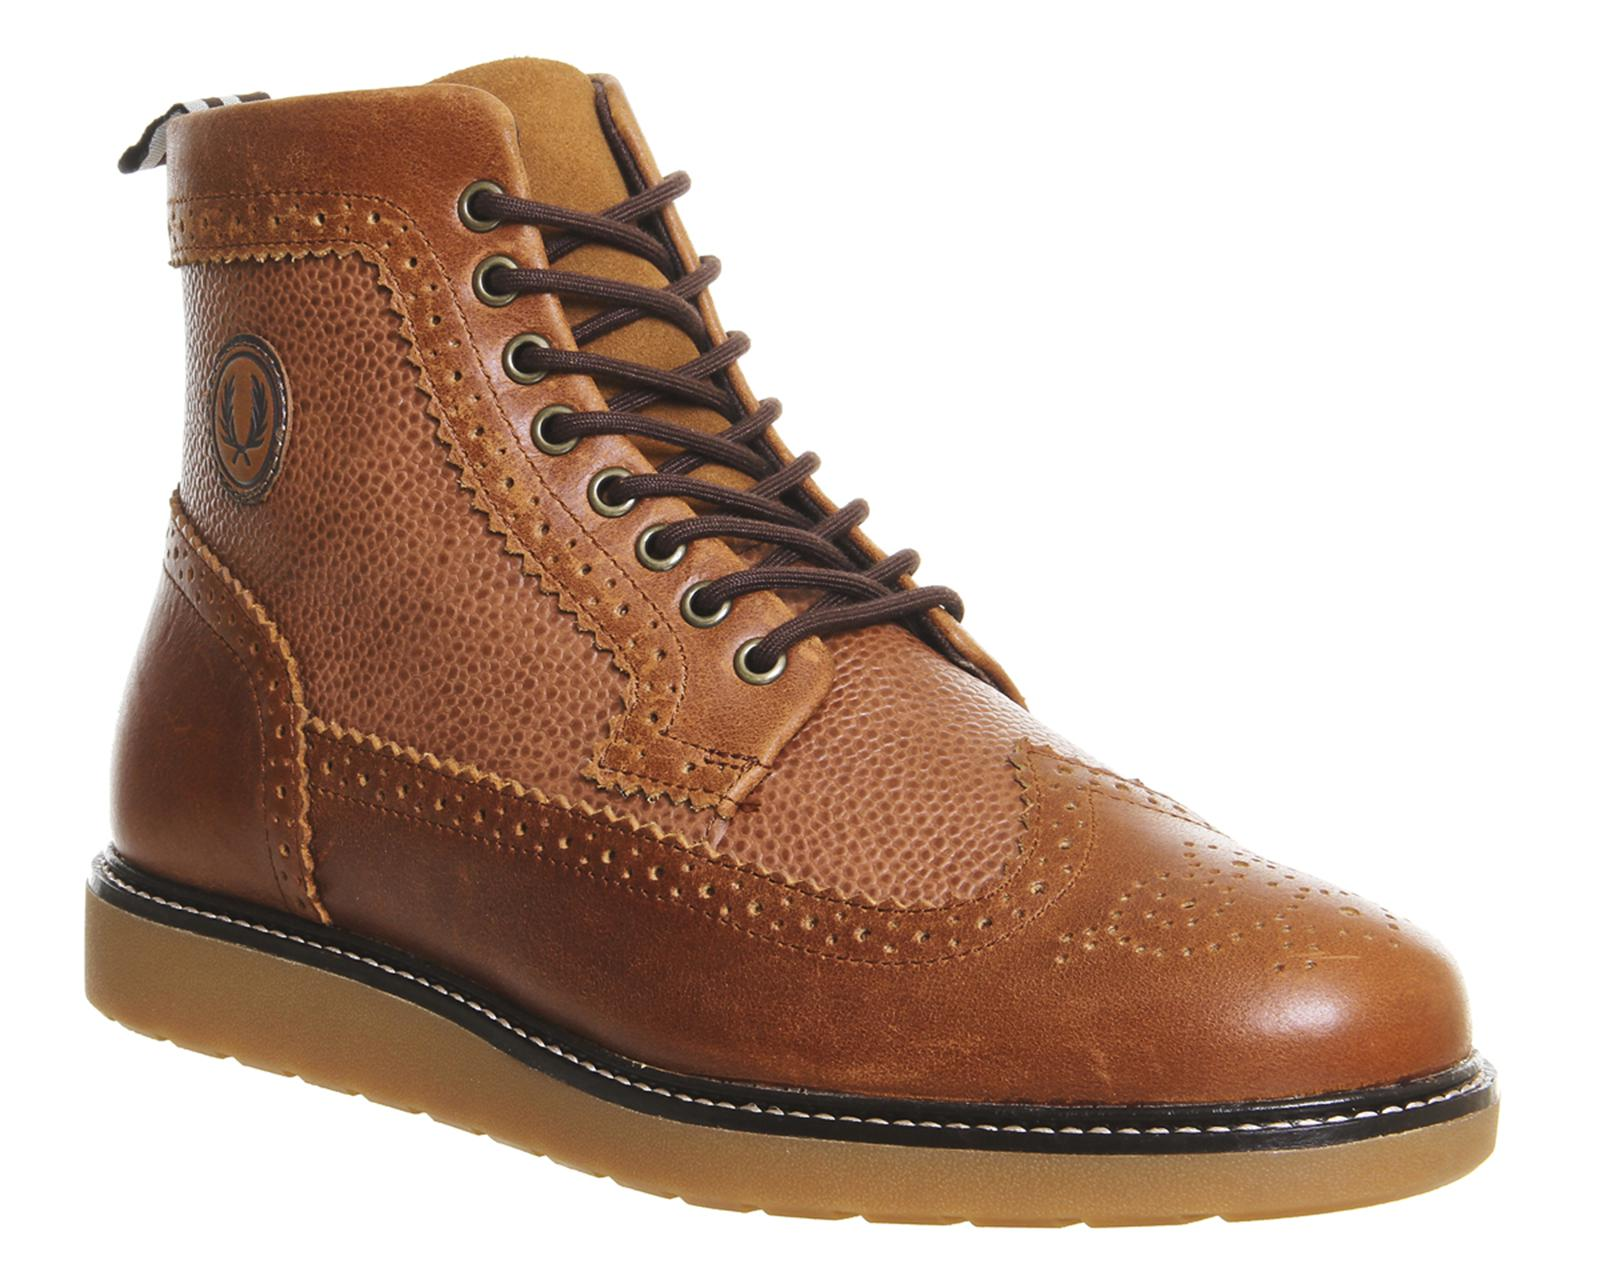 Lyst - Fred Perry Northgate Boots in Brown for Men